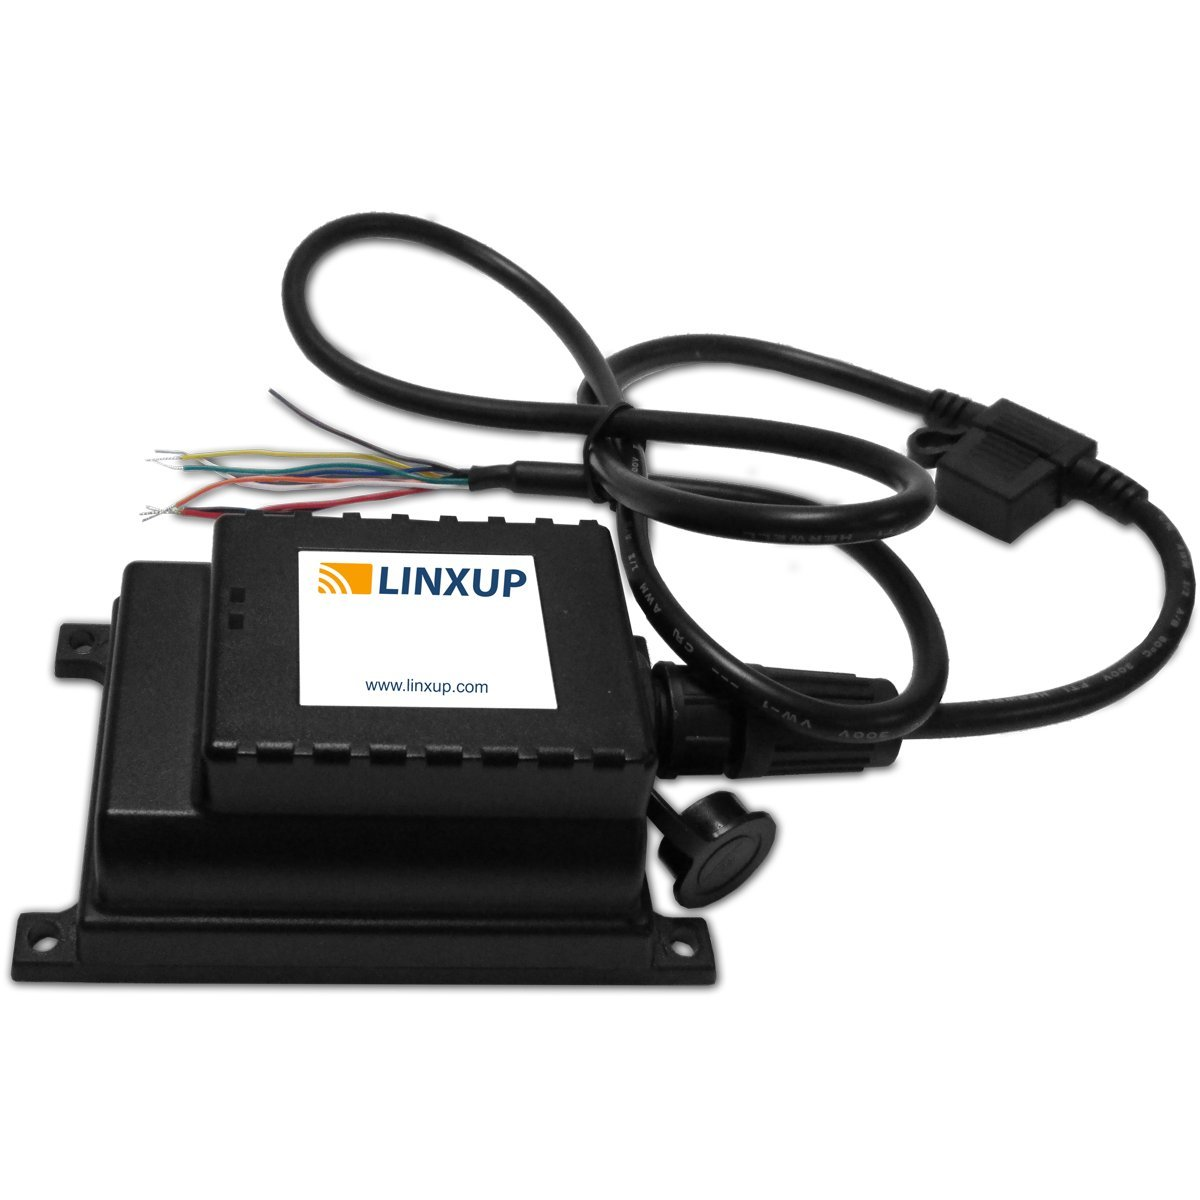 61R%2BdwNOE4L._SL1200_ amazon com linxup laaa61 gps tracking device, locator for linxup wiring diagram at love-stories.co